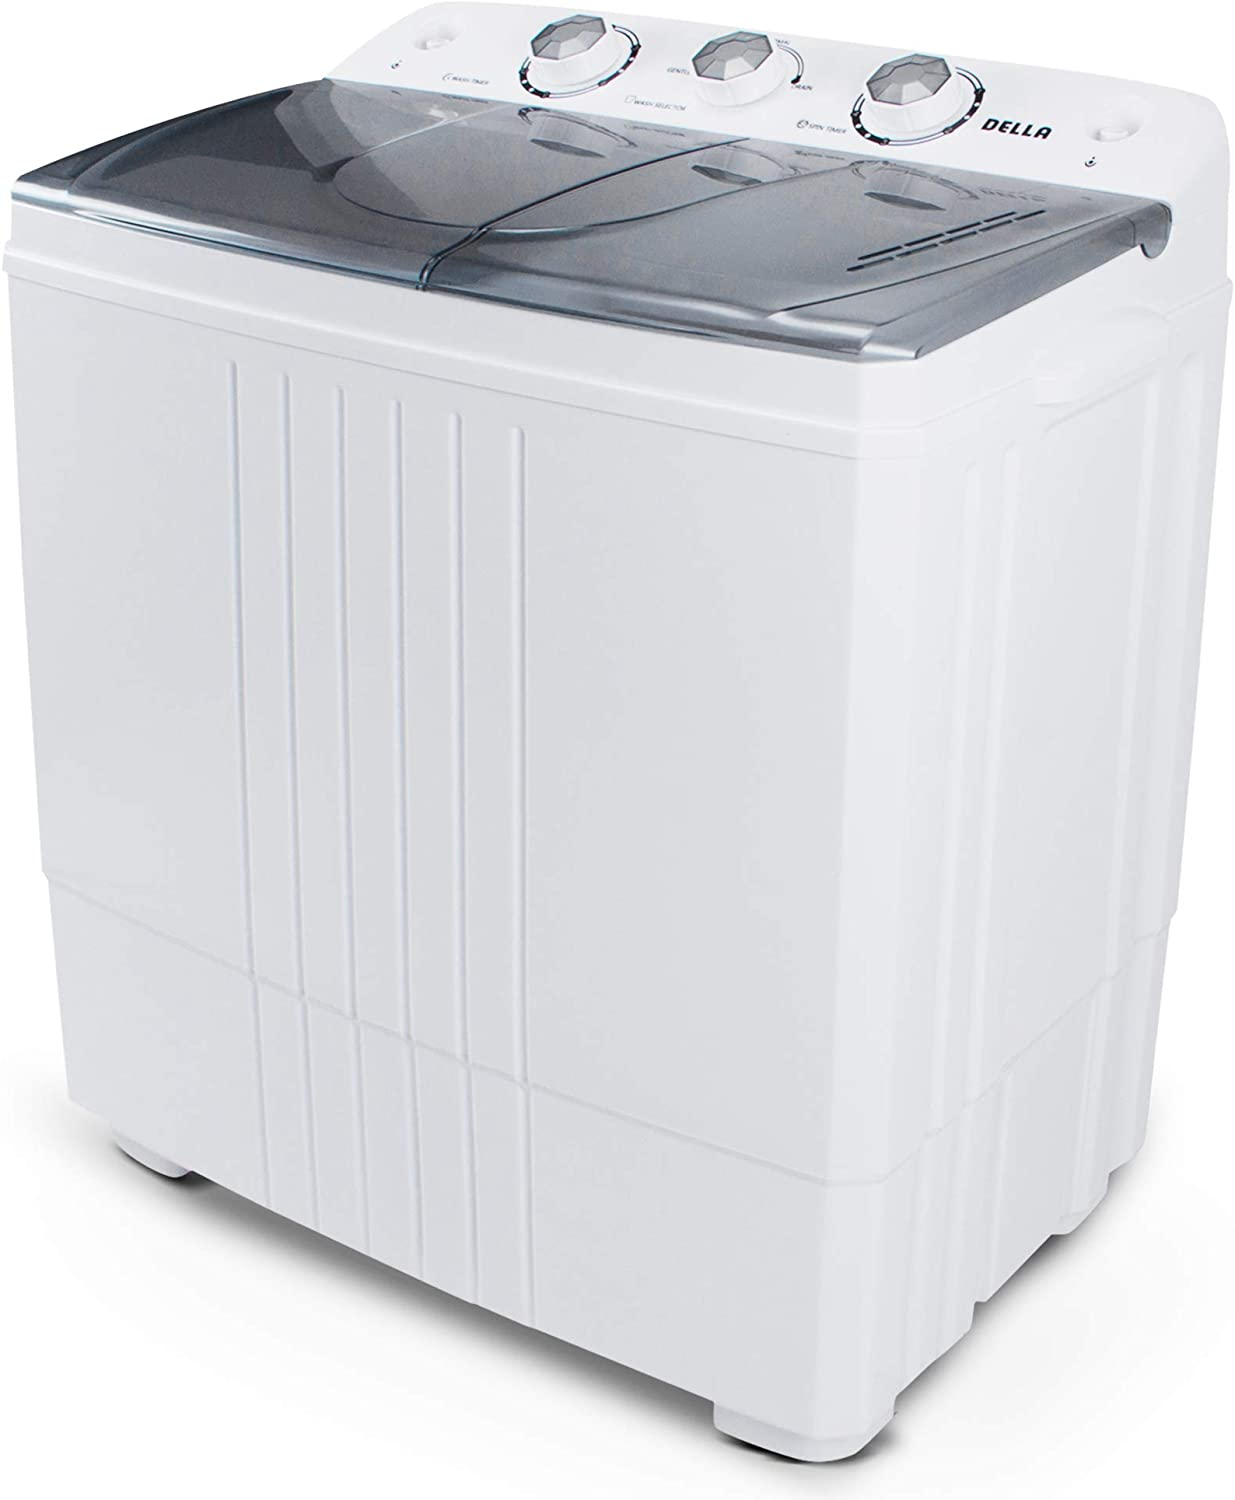 Top Load Laundry Spin Dryer 11 pounds Capacity